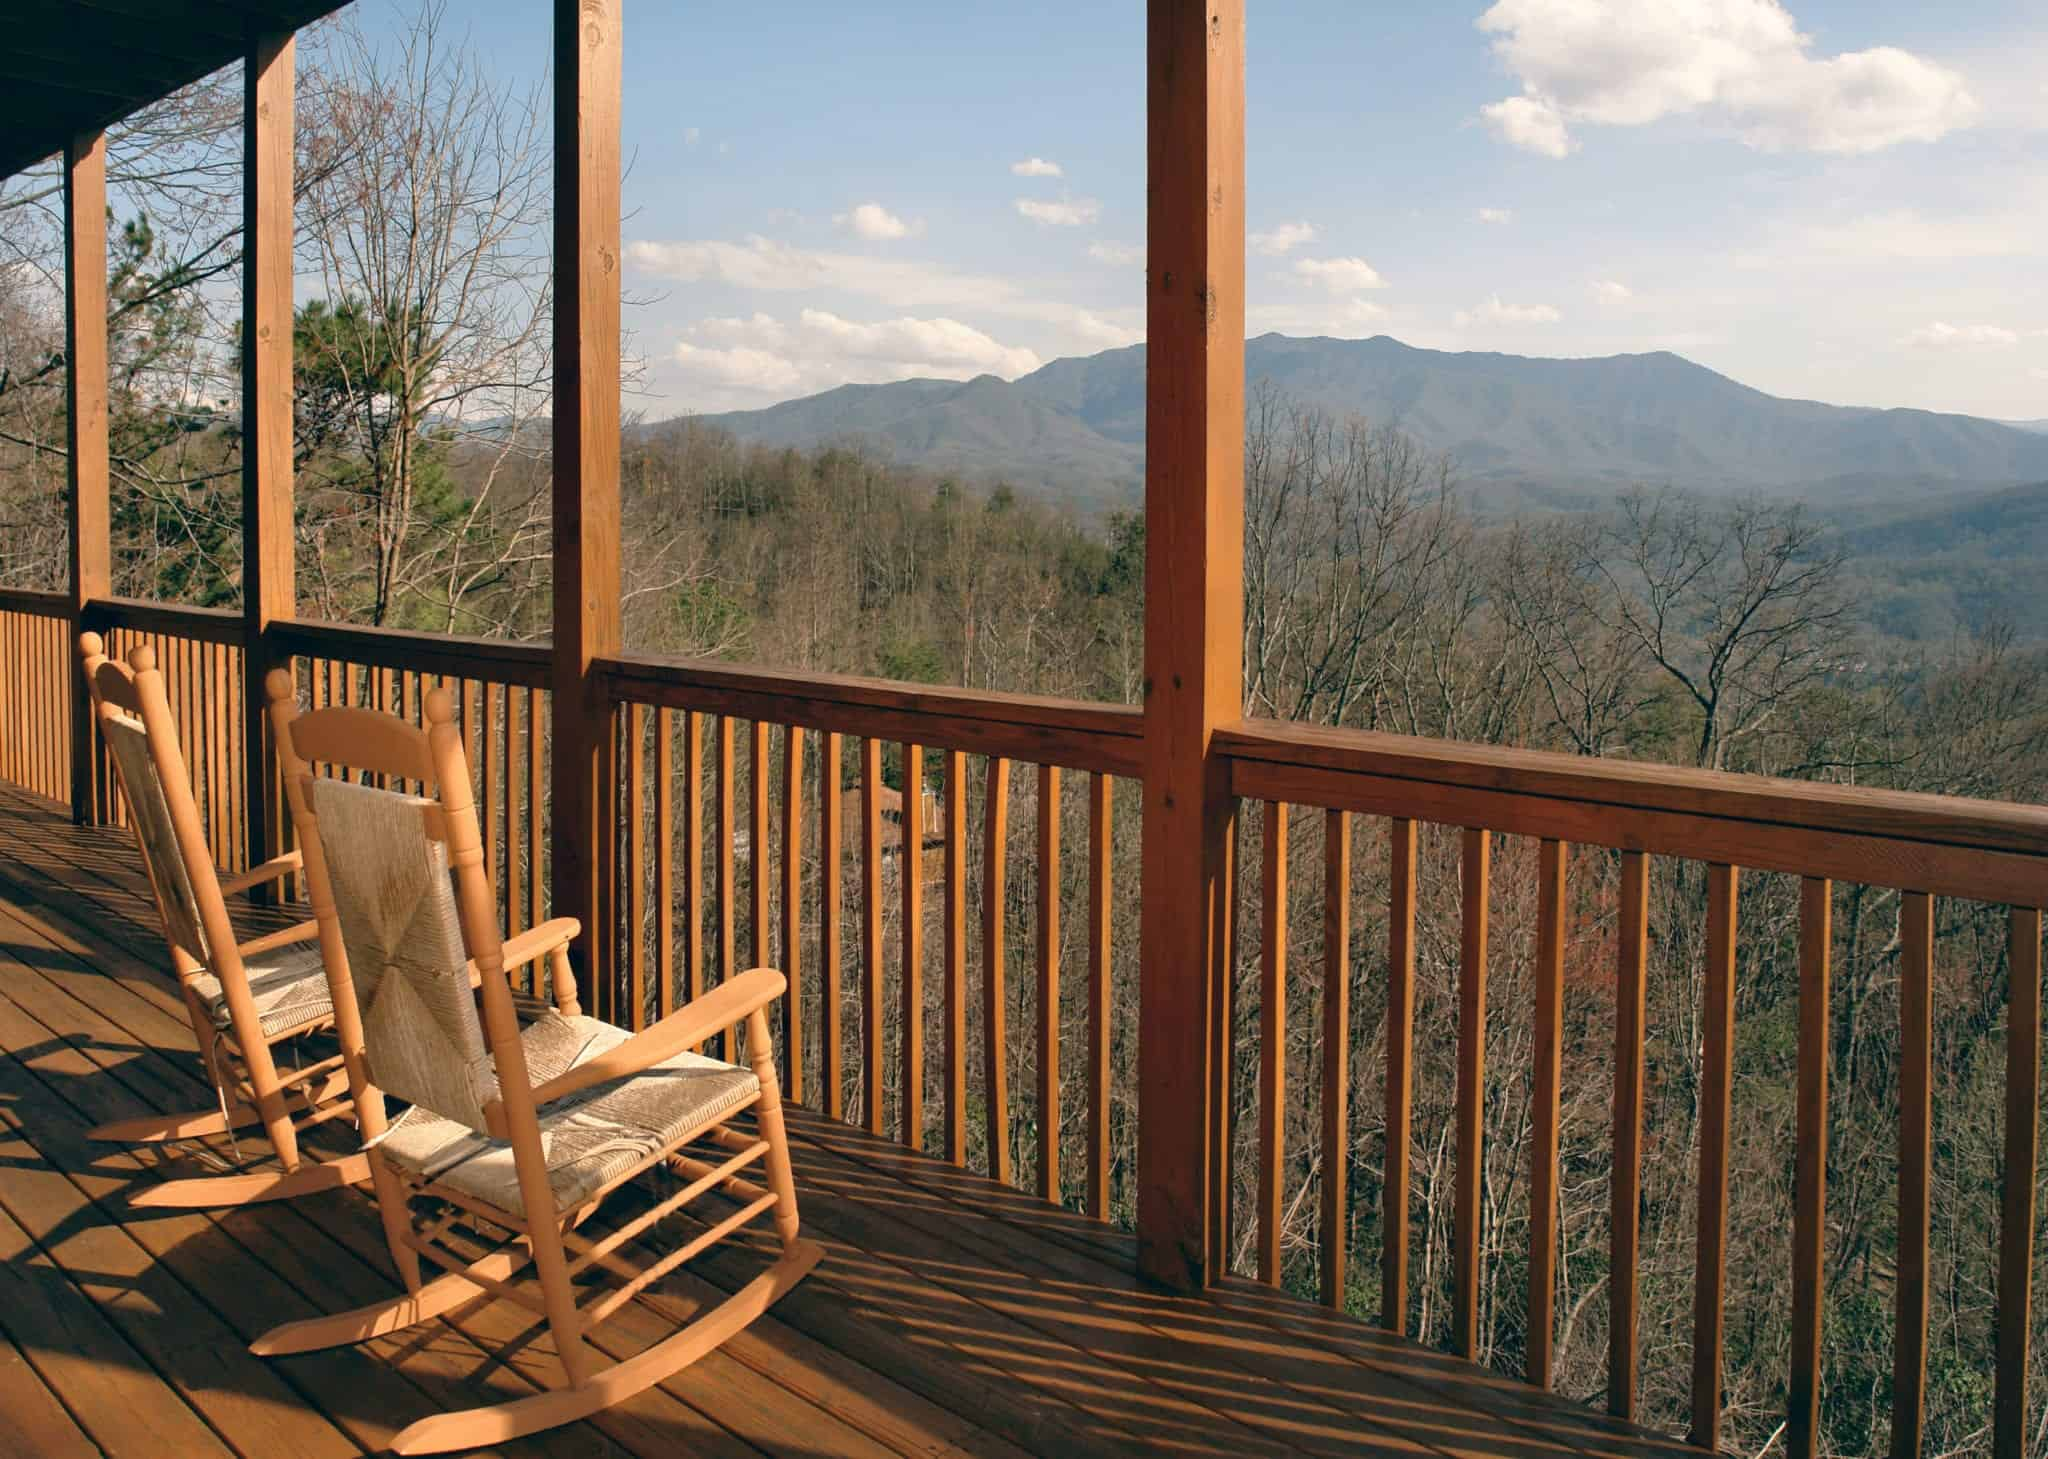 pin stay mountains gatlinburg rentals forks old come one smokey roaring features cemetery parkside mountain cabins of tenn or the pinterest in chalets cabin our smoky tennessee